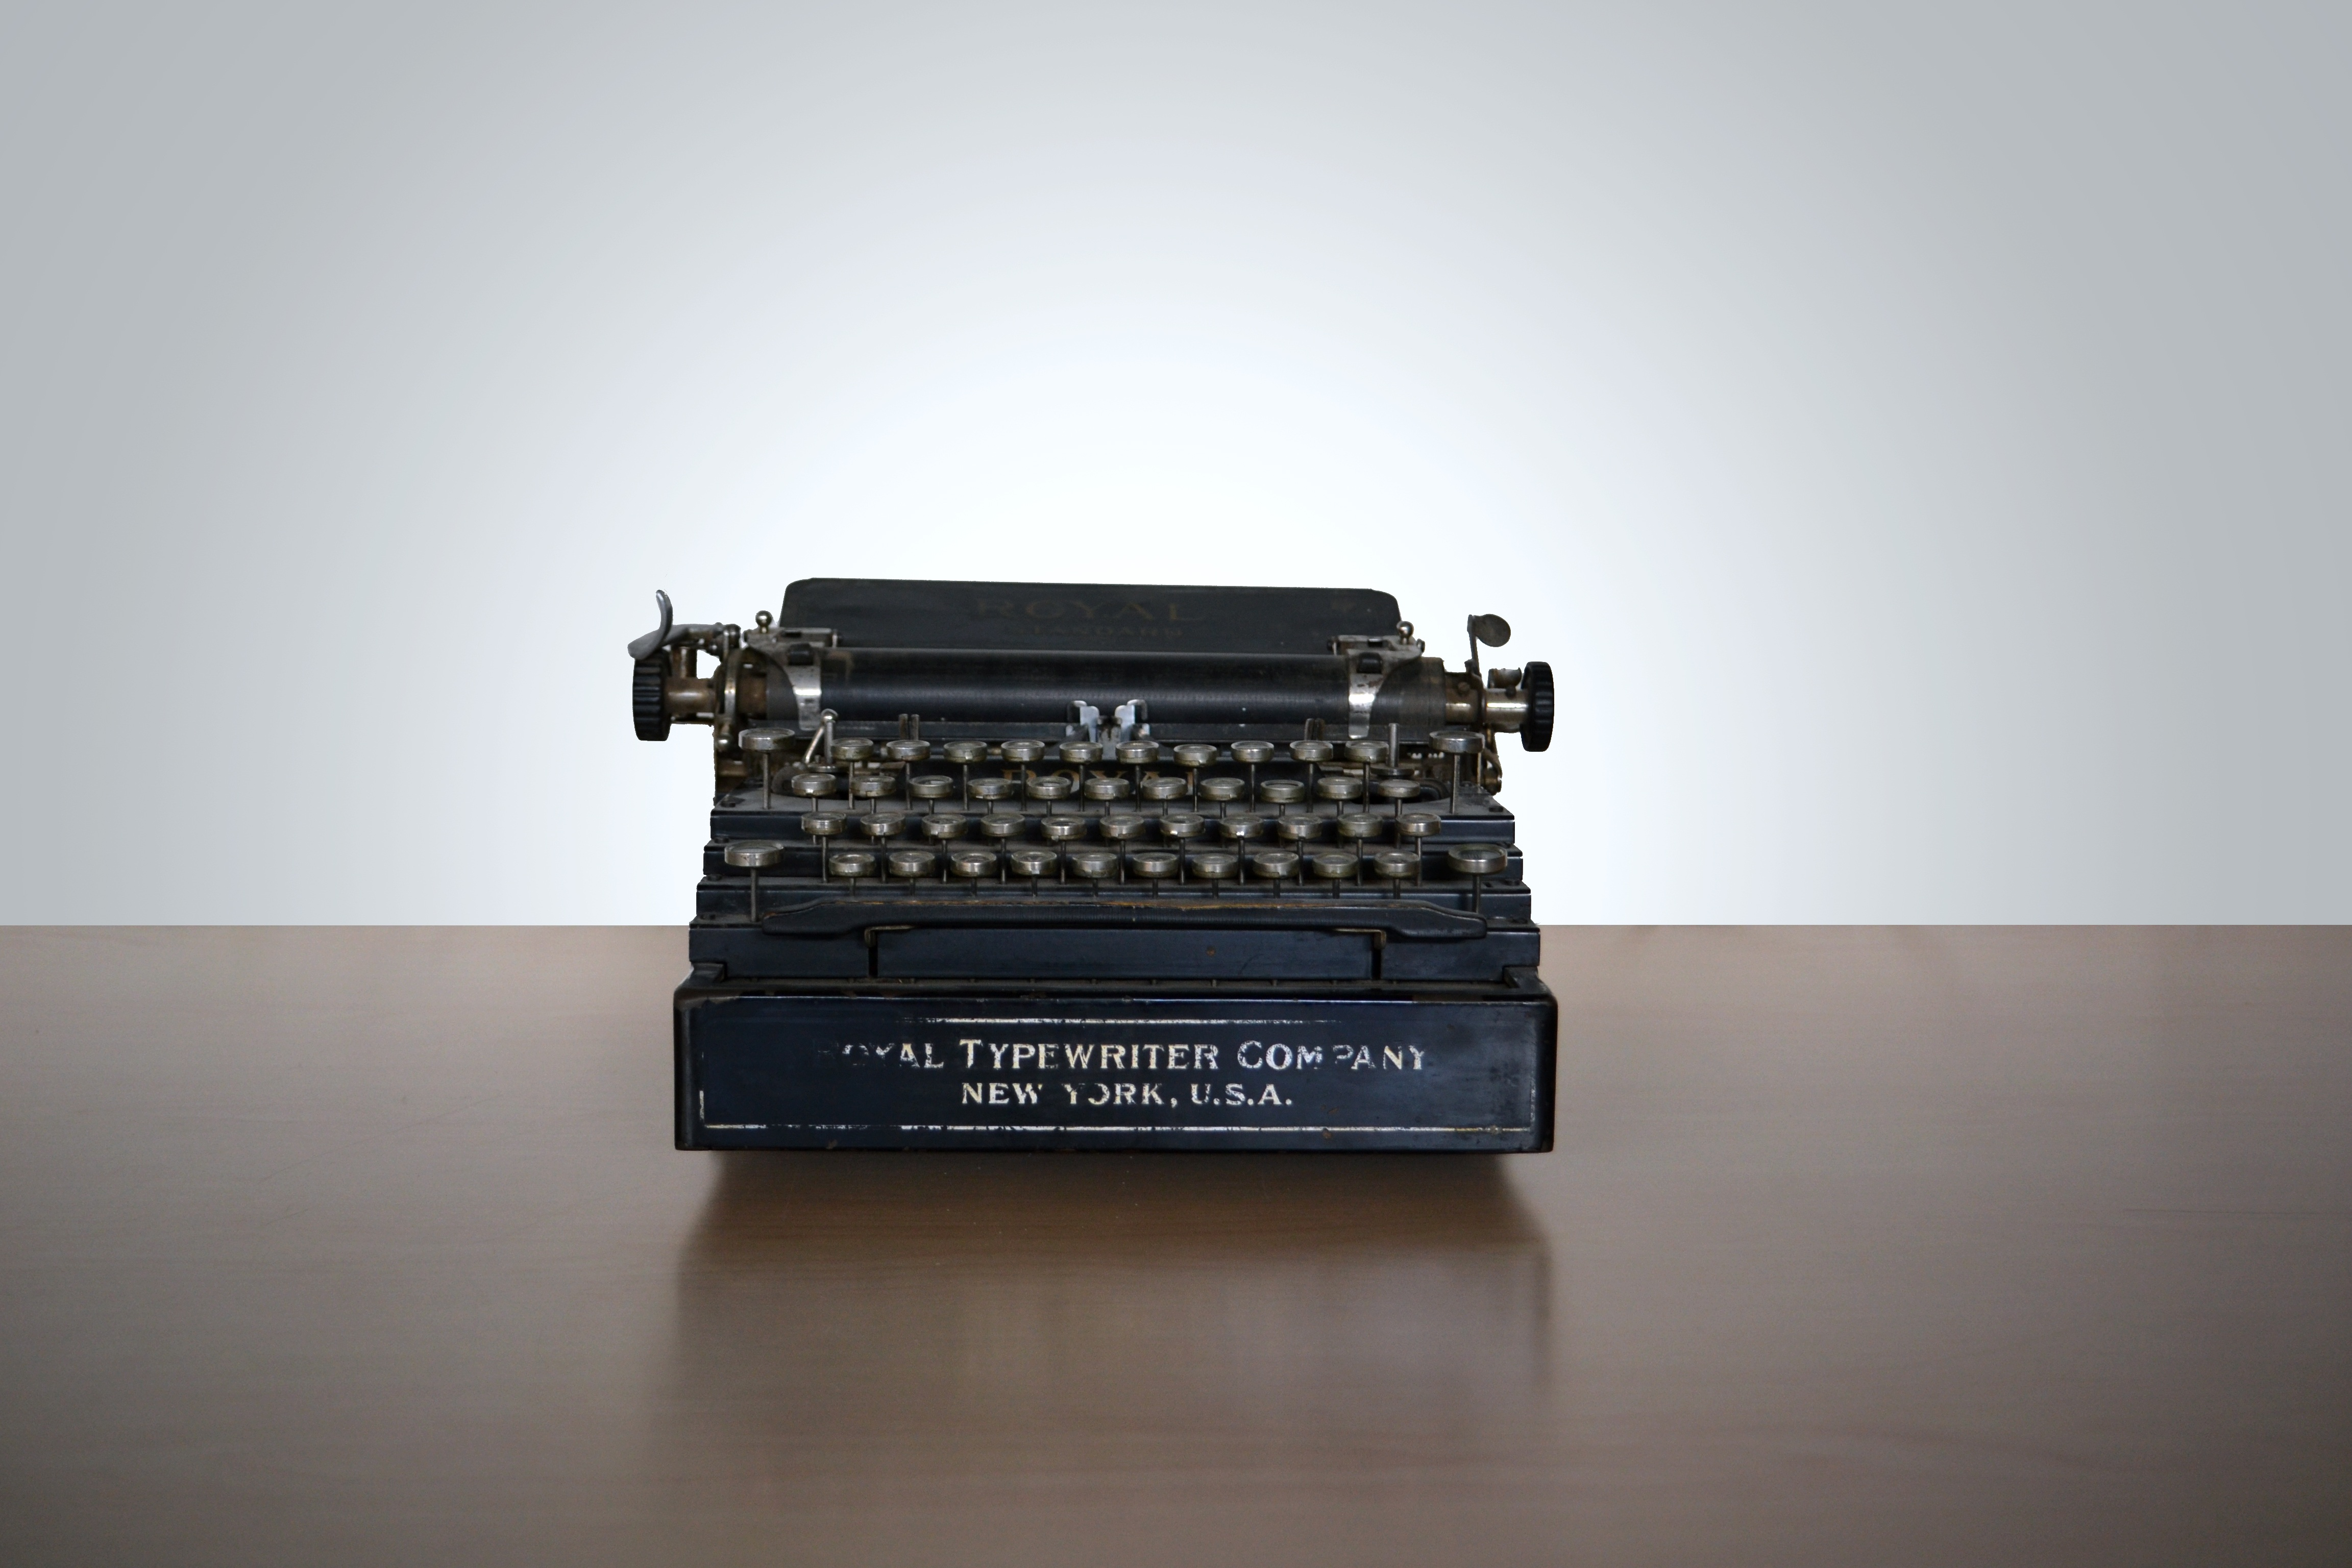 A picture of a vintage typewriter